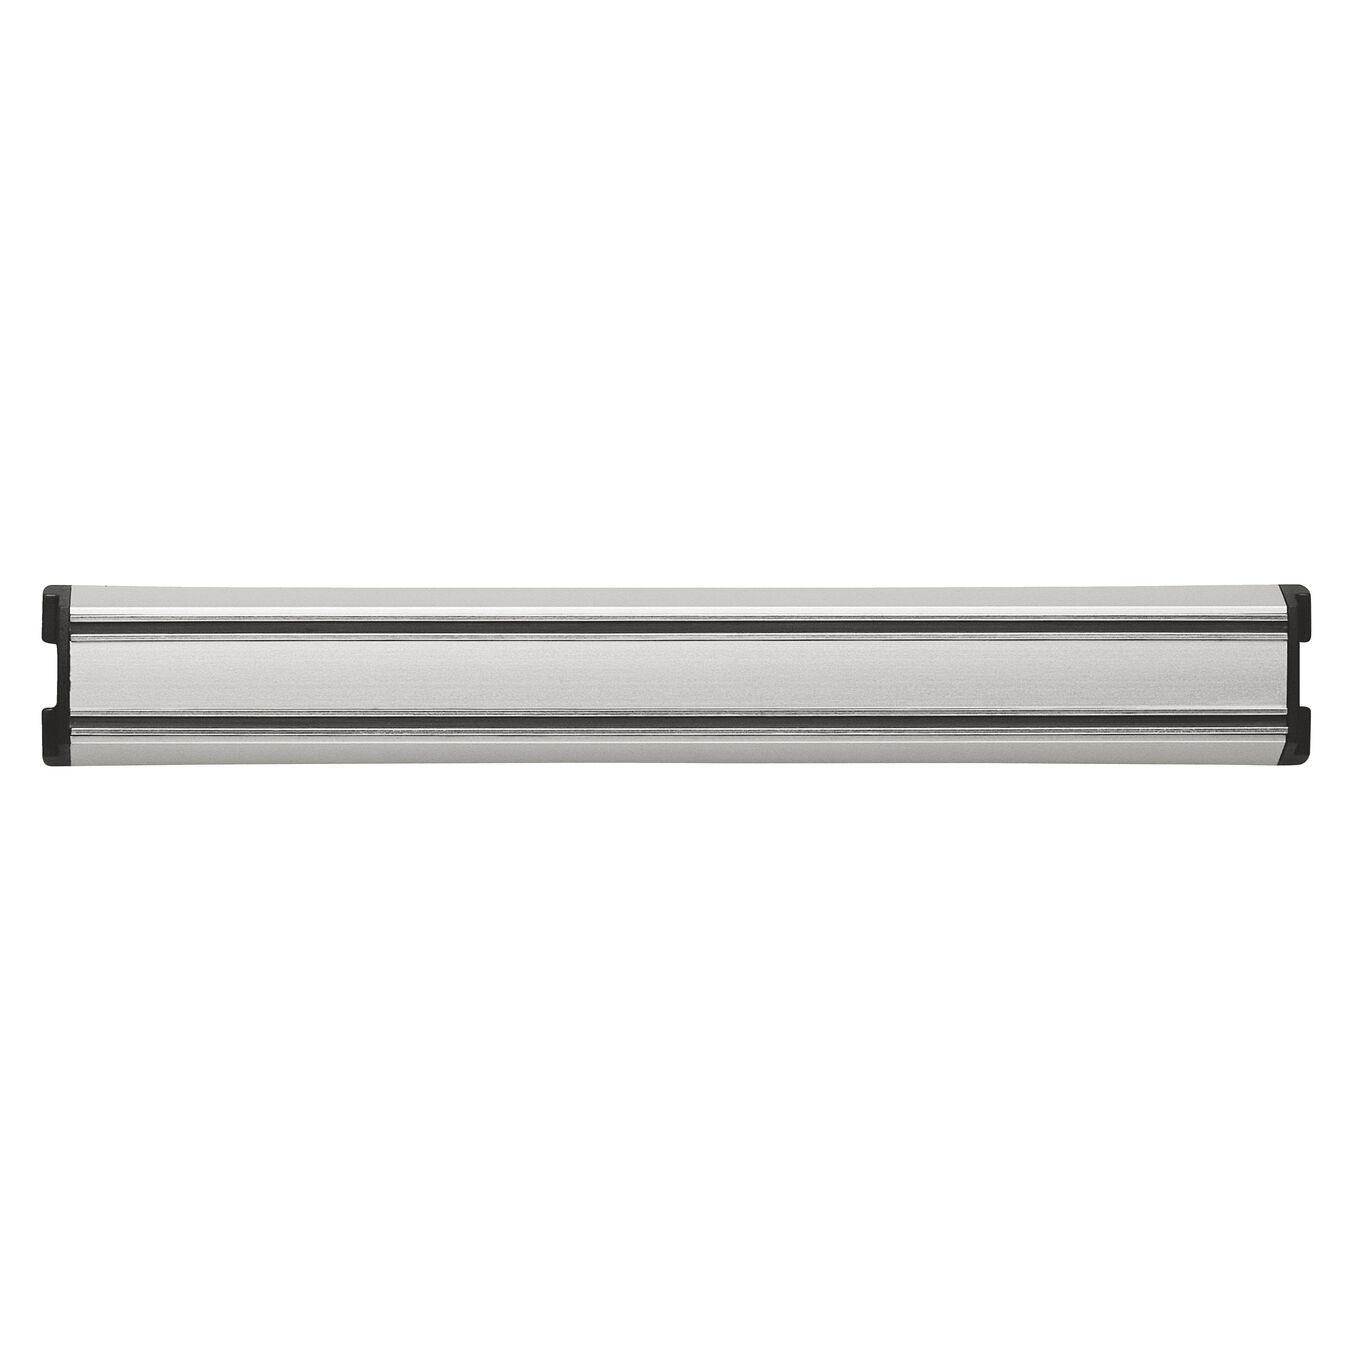 12-inch, Aluminum, Magnetic knife bar, silver,,large 1